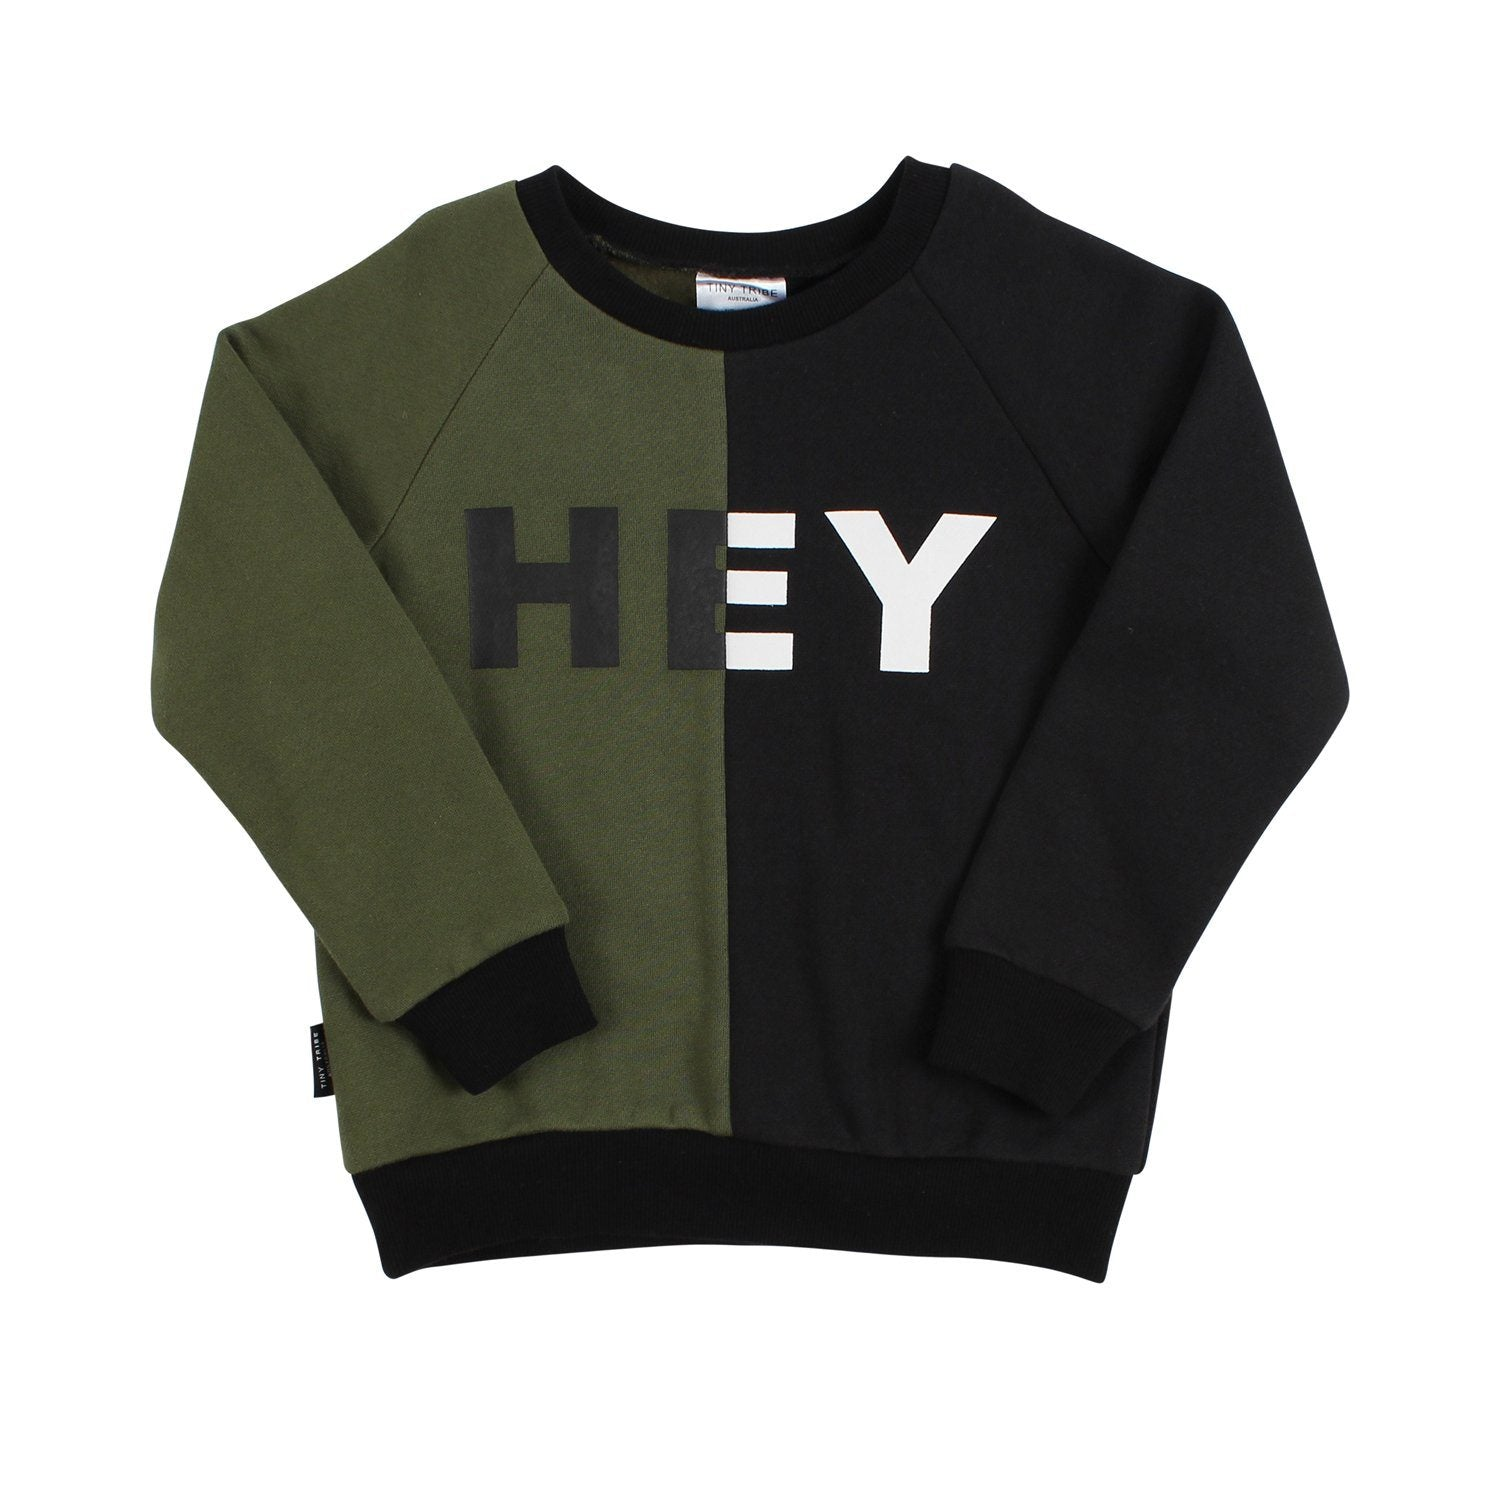 Hey Segment Sweat Top